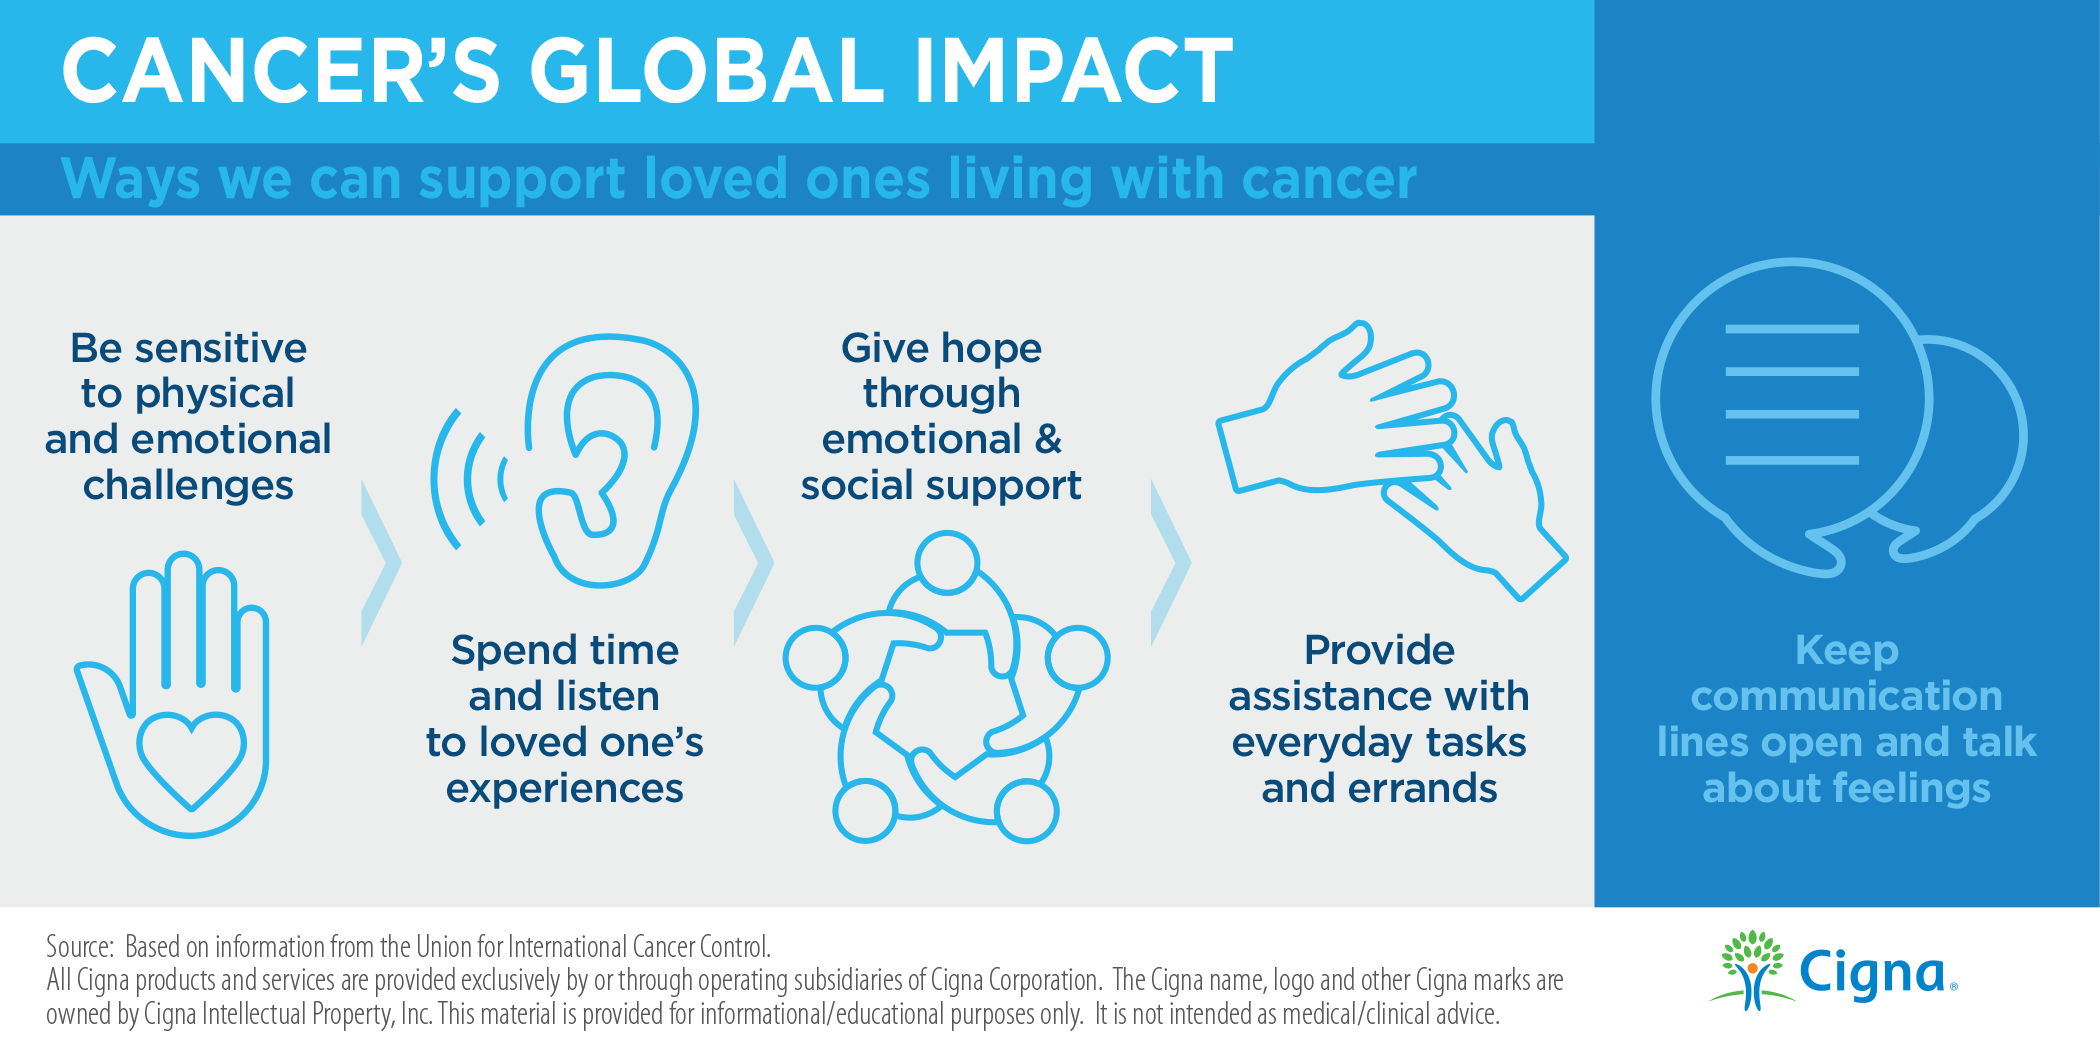 Ways We Can Support Loved Ones Living With Cancer Infographic